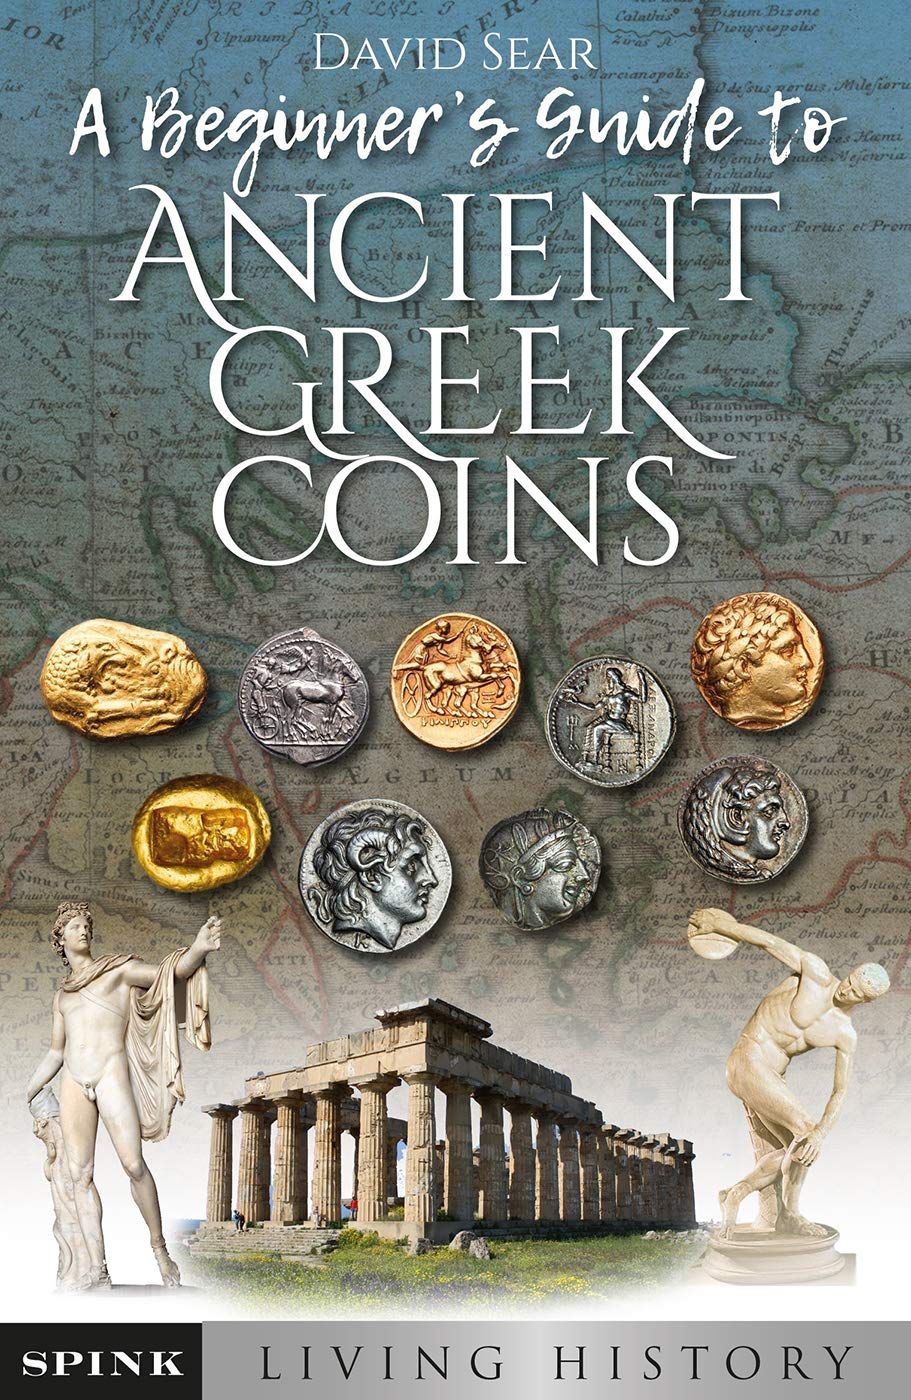 An Introductory Guide To Collecting Ancient Greek And Roman Coins. Volume I  Living History